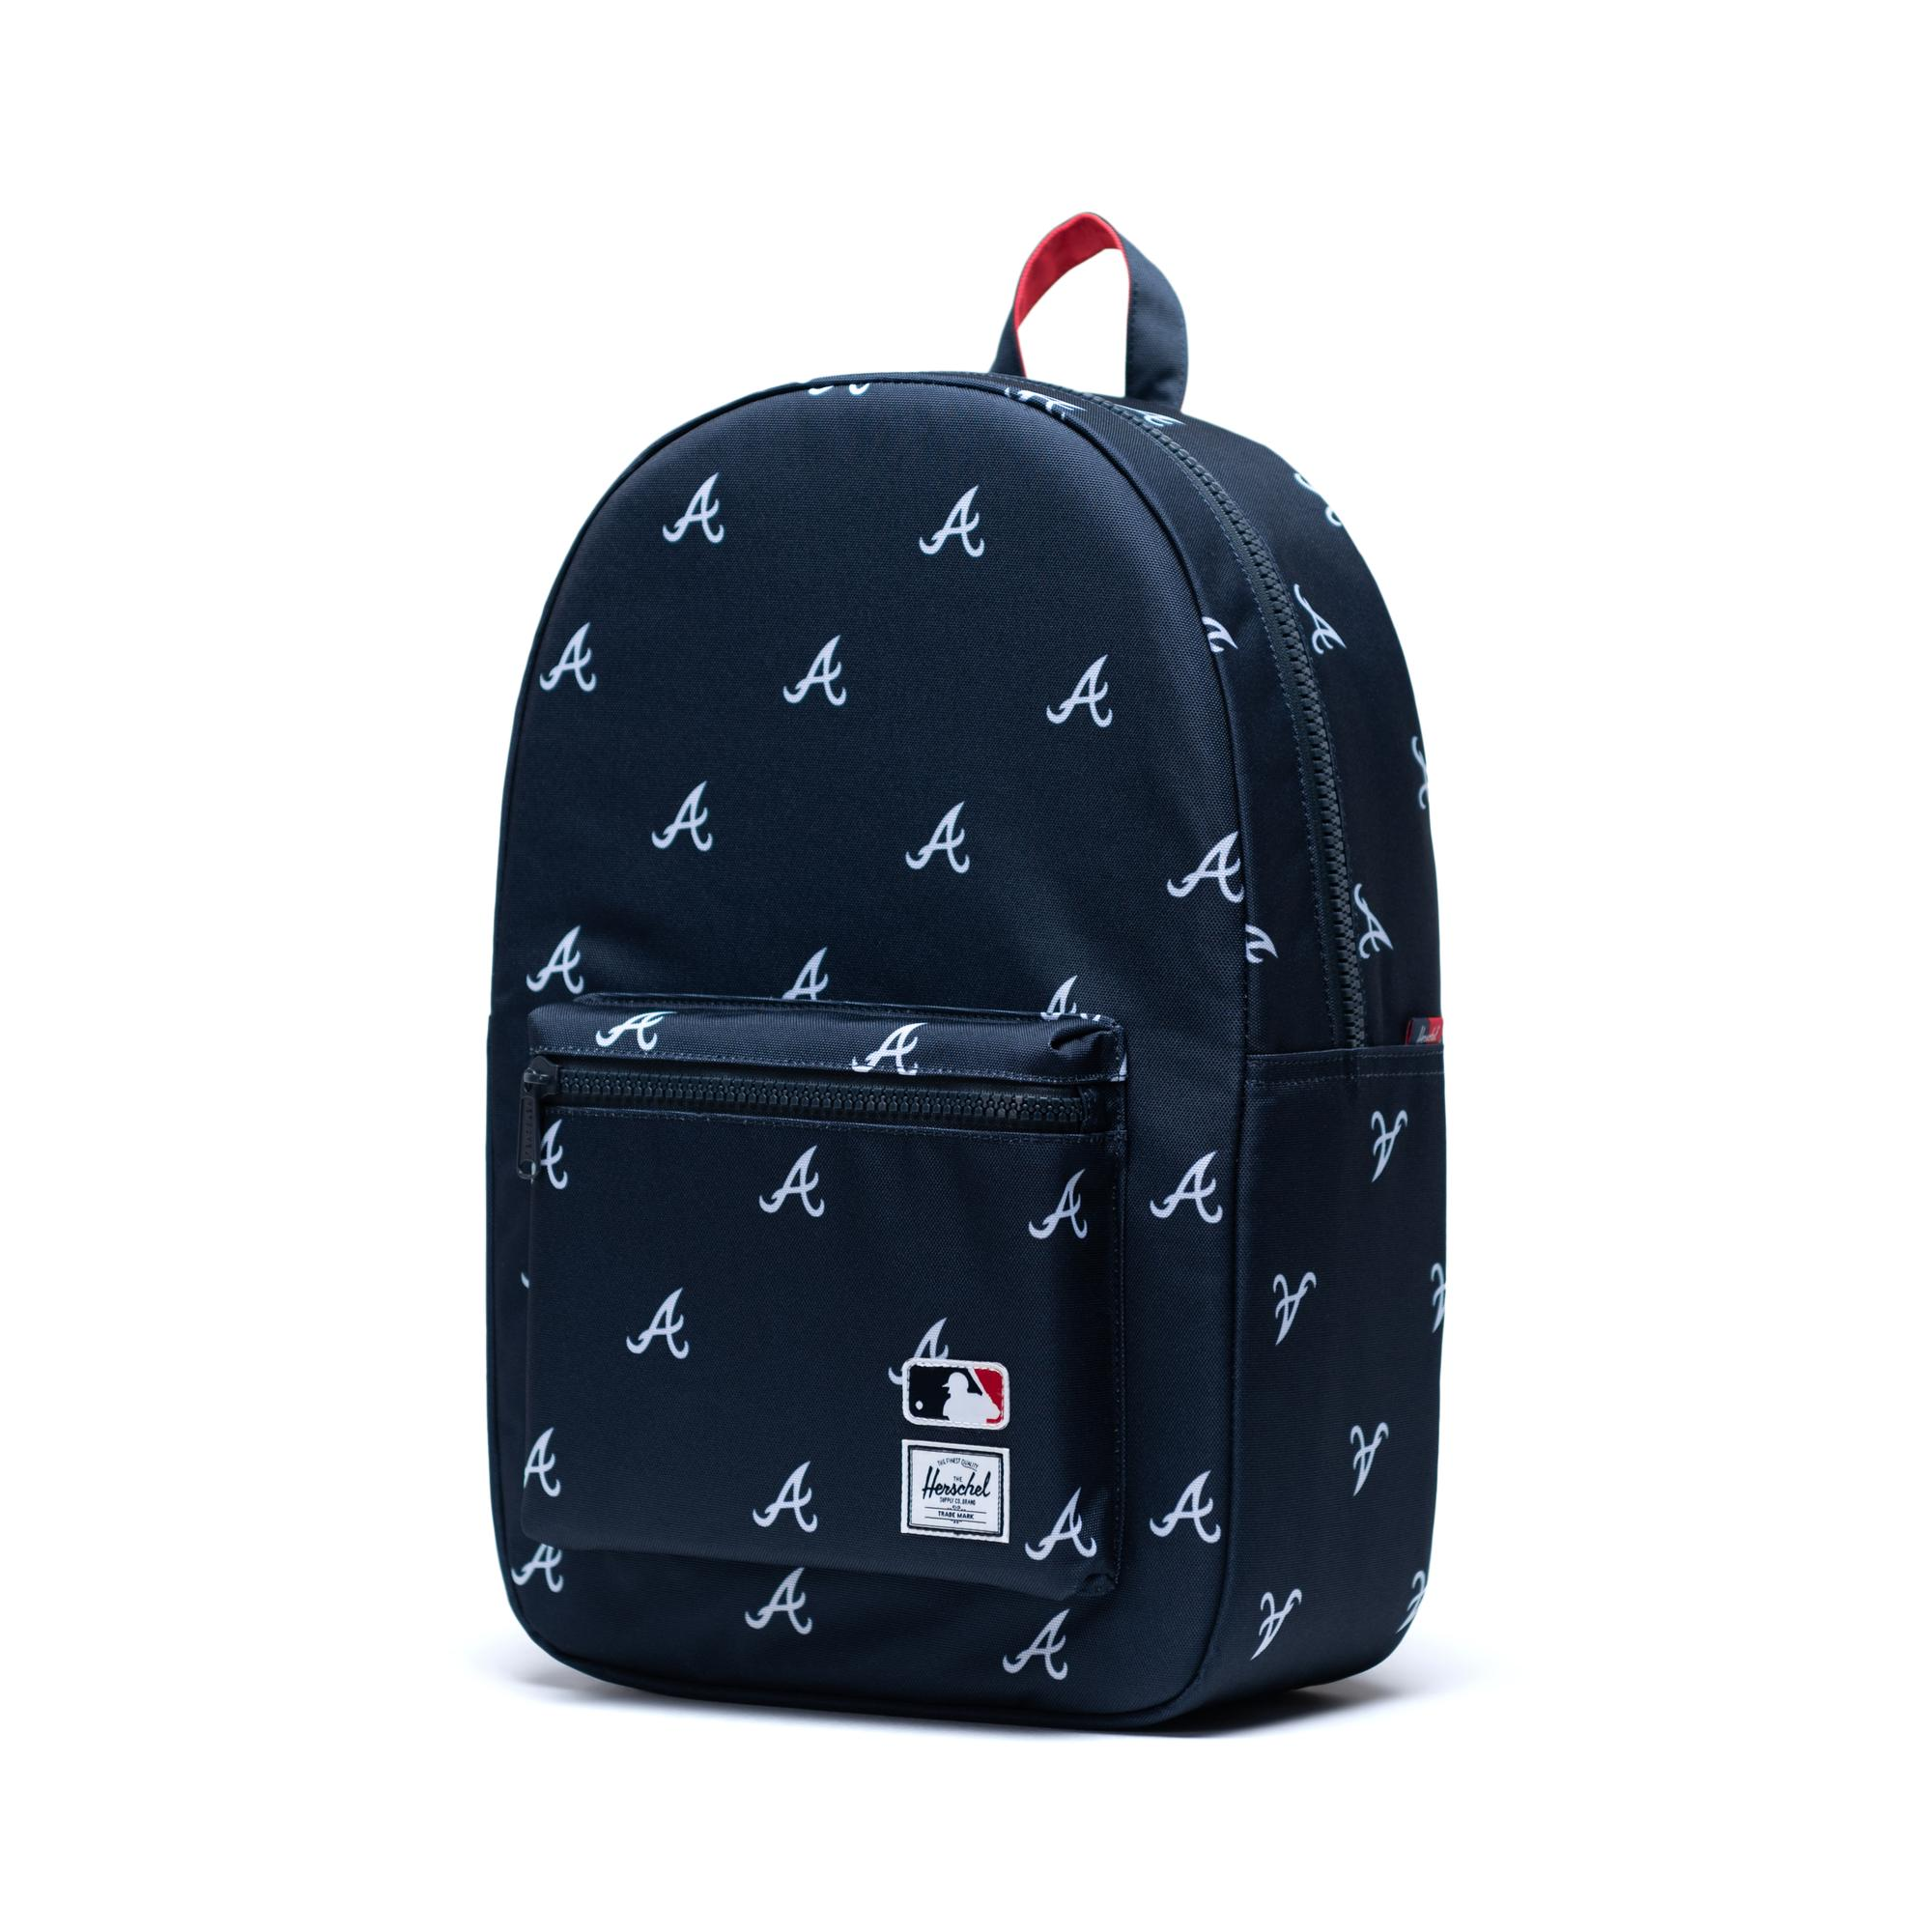 def8acf0fdf1 Settlement Backpack MLB Outfield